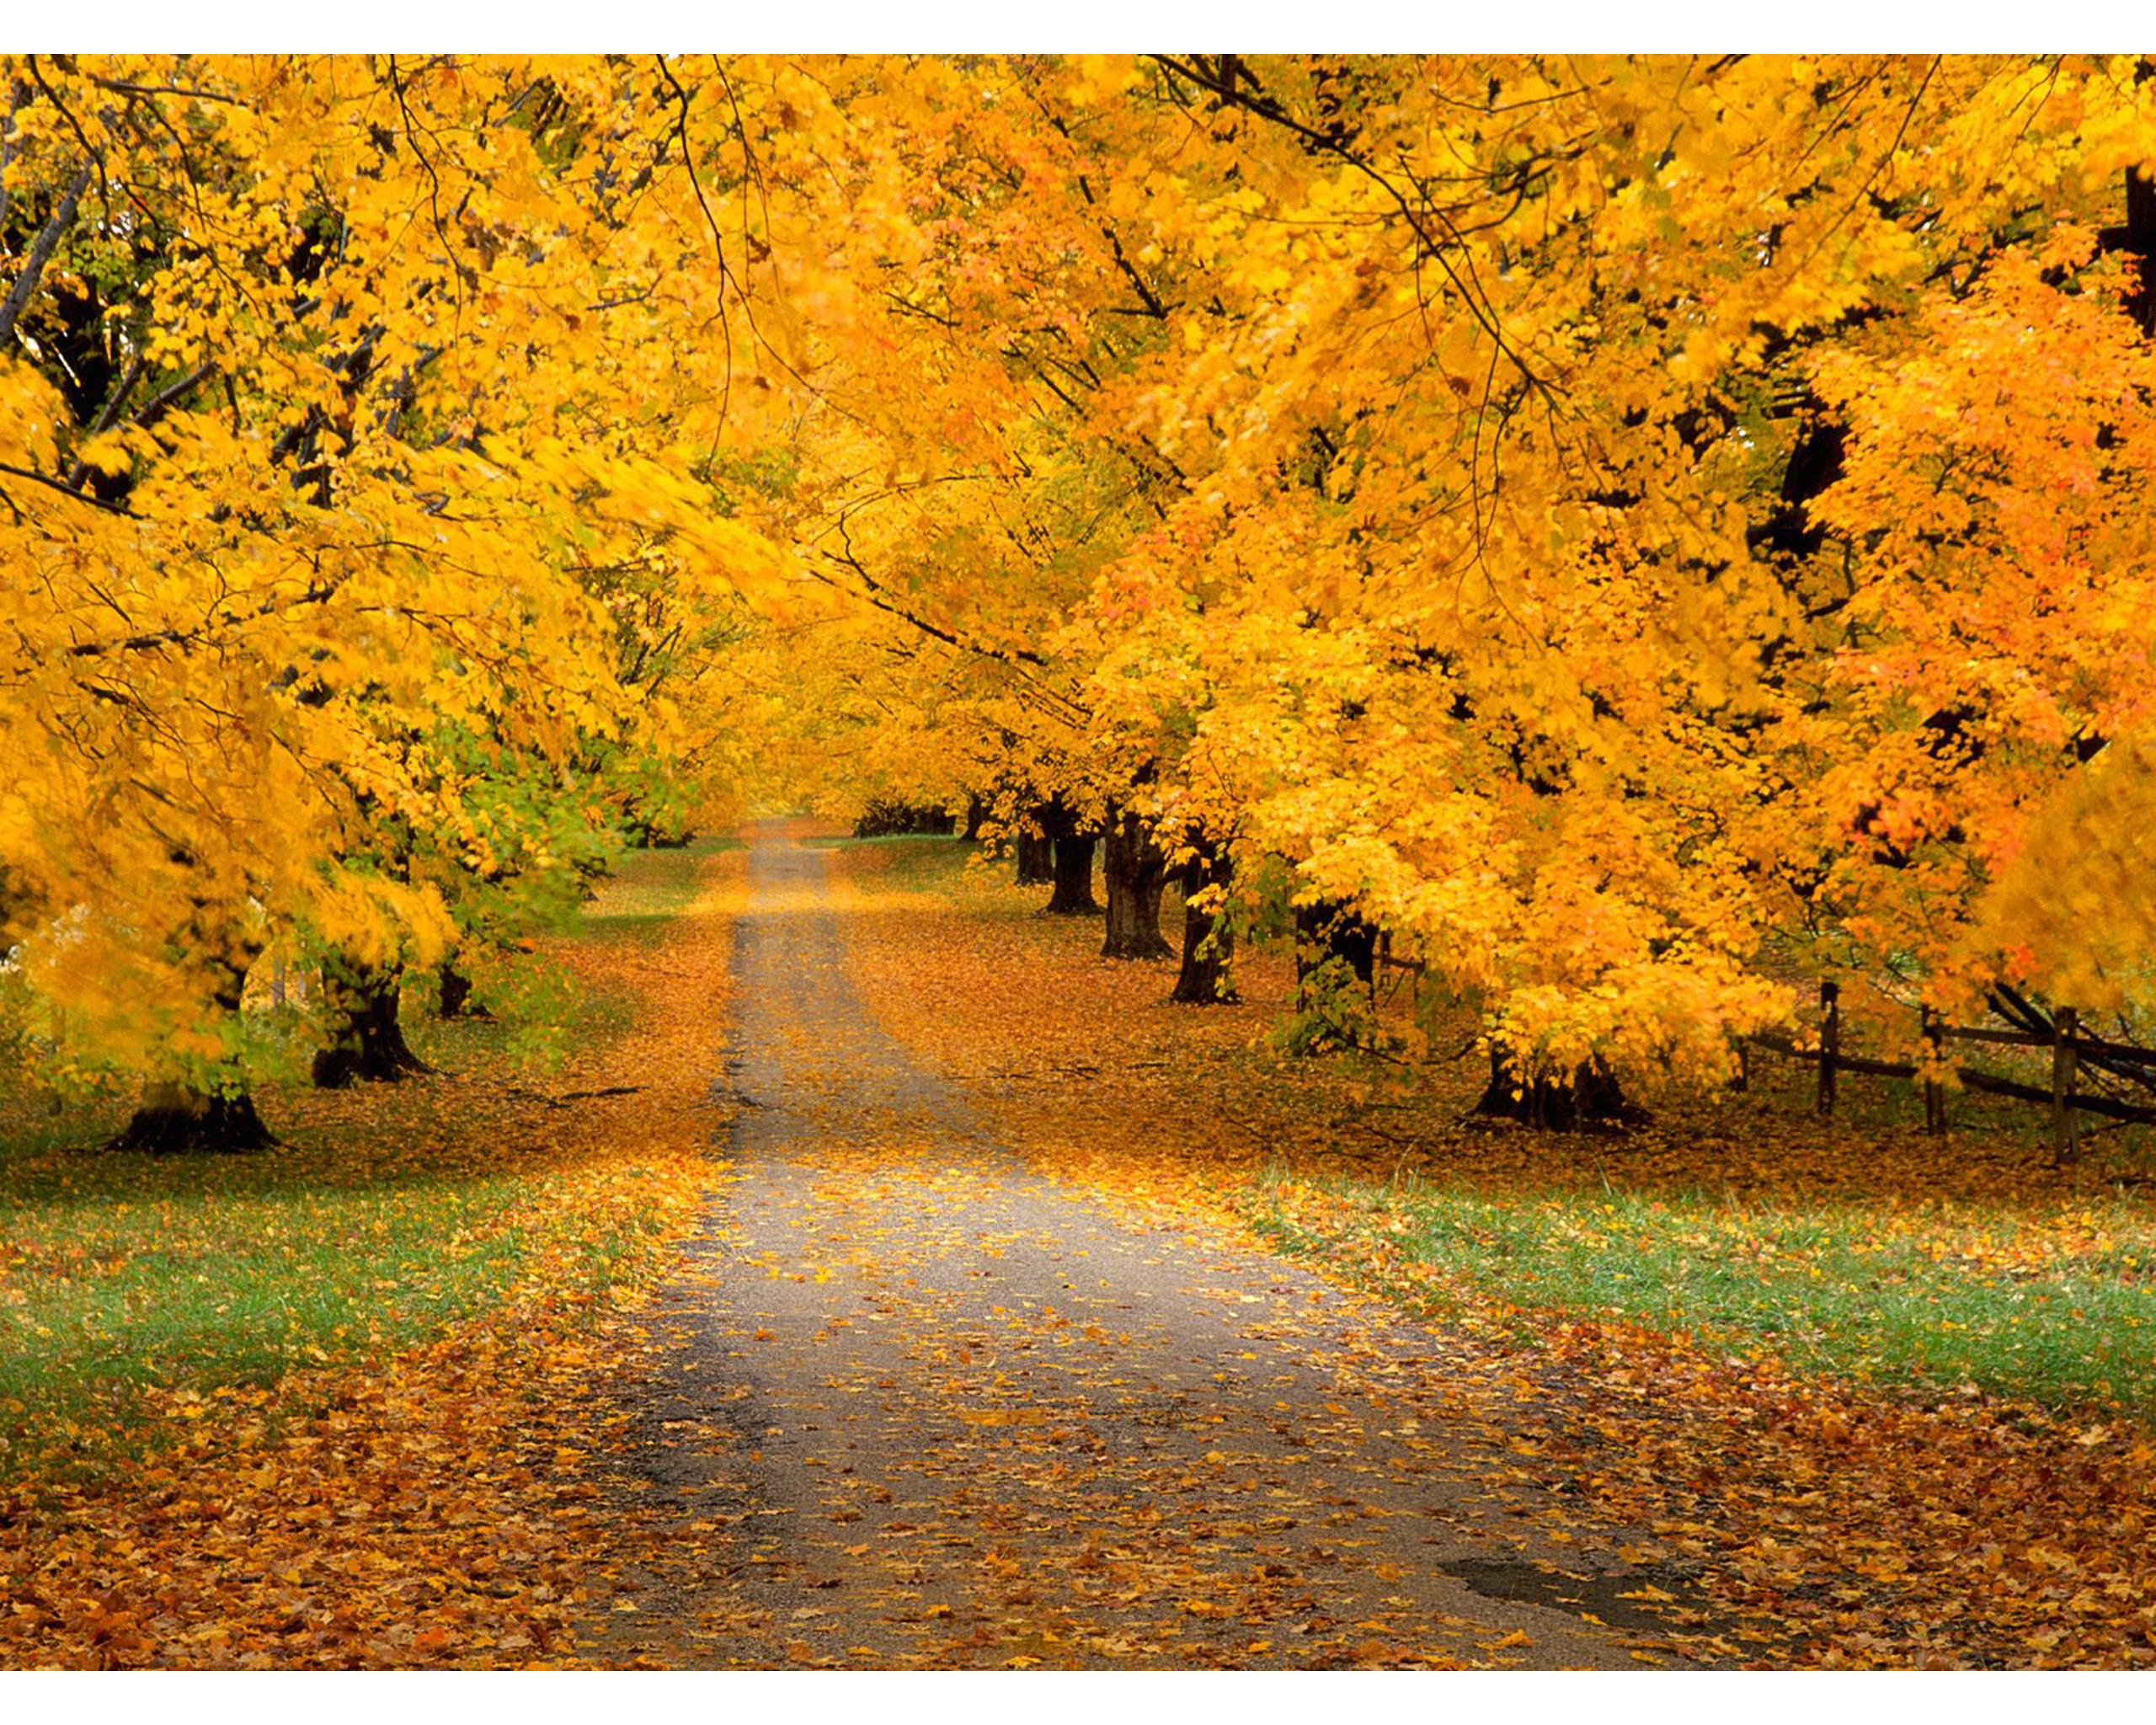 Autumn Road Wallpapers   2560x2048   2311480 2560x2048